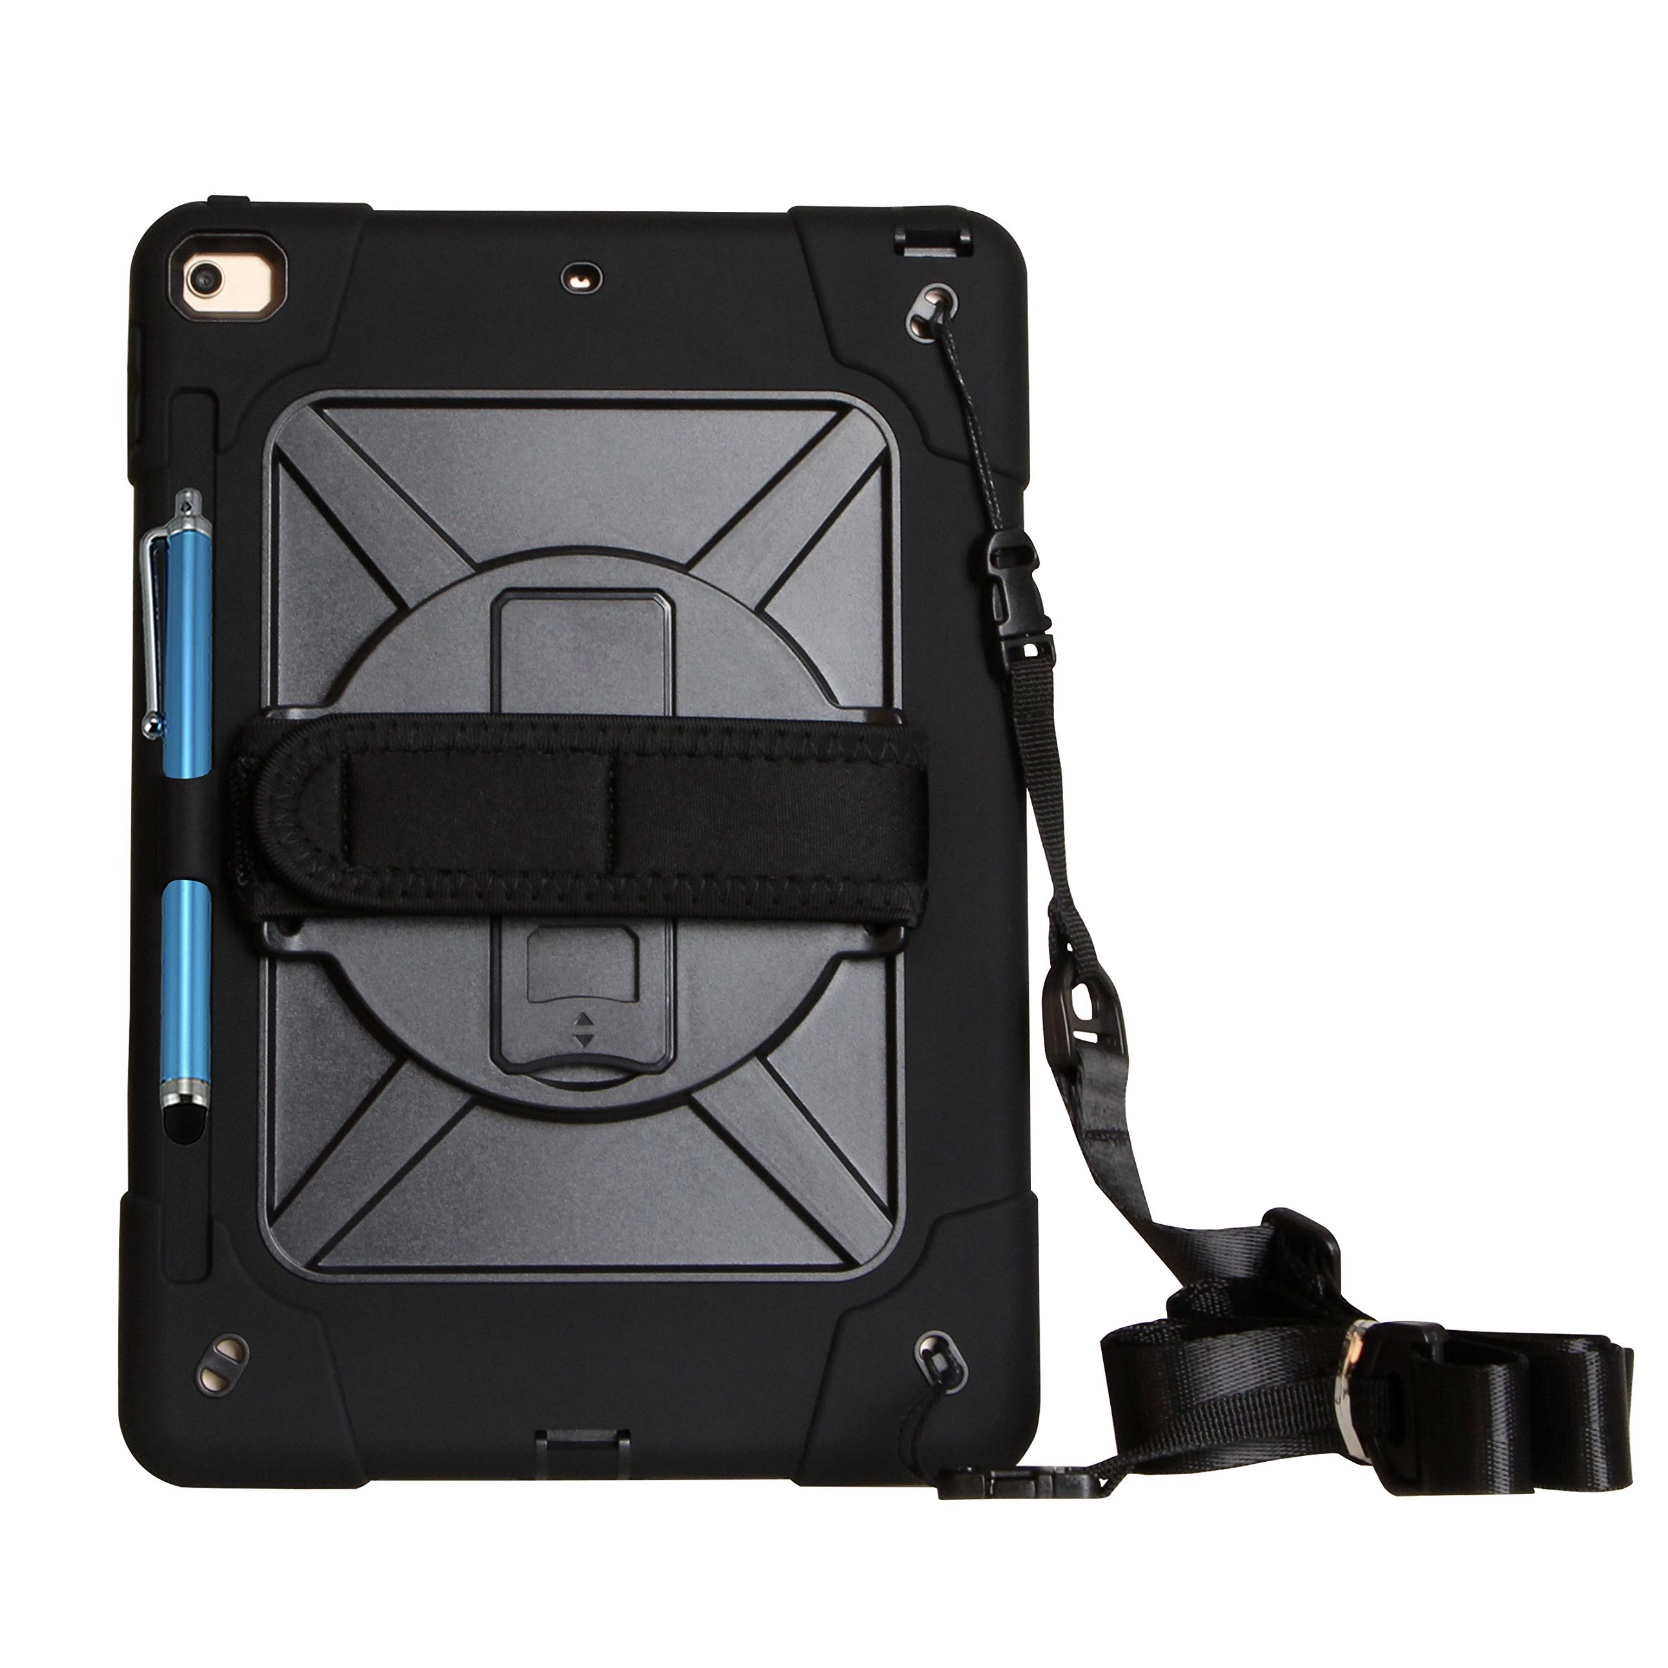 Coque de protection PRO Sangle main rotative et harnais epaule Apple iPAD 10.2 pouces